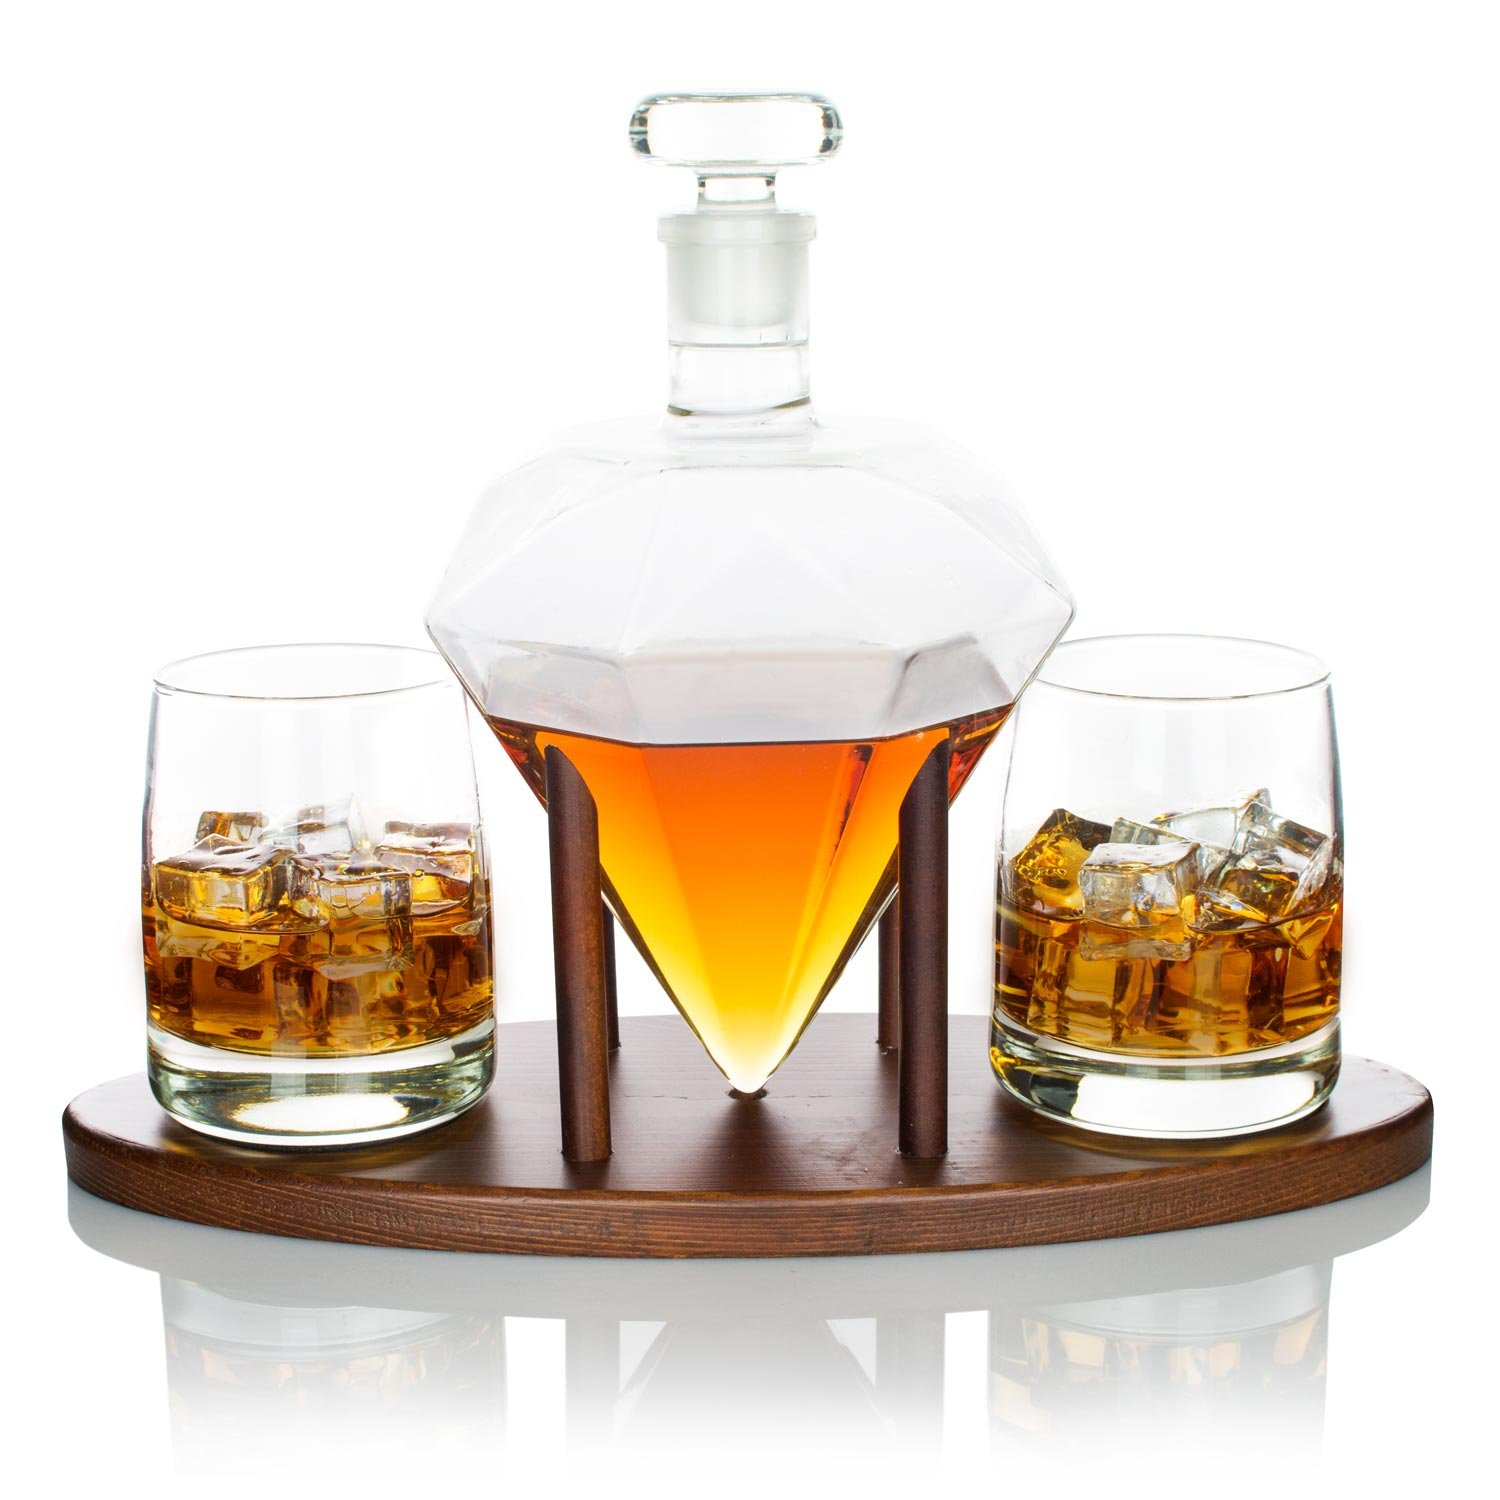 Atterstone Diamond Decanter Set/Full Set with Custom Mahogany Decanter Stand, 2 Diamond Whiskey Glasses, Whiskey Stones and Stainless Steel Funnel